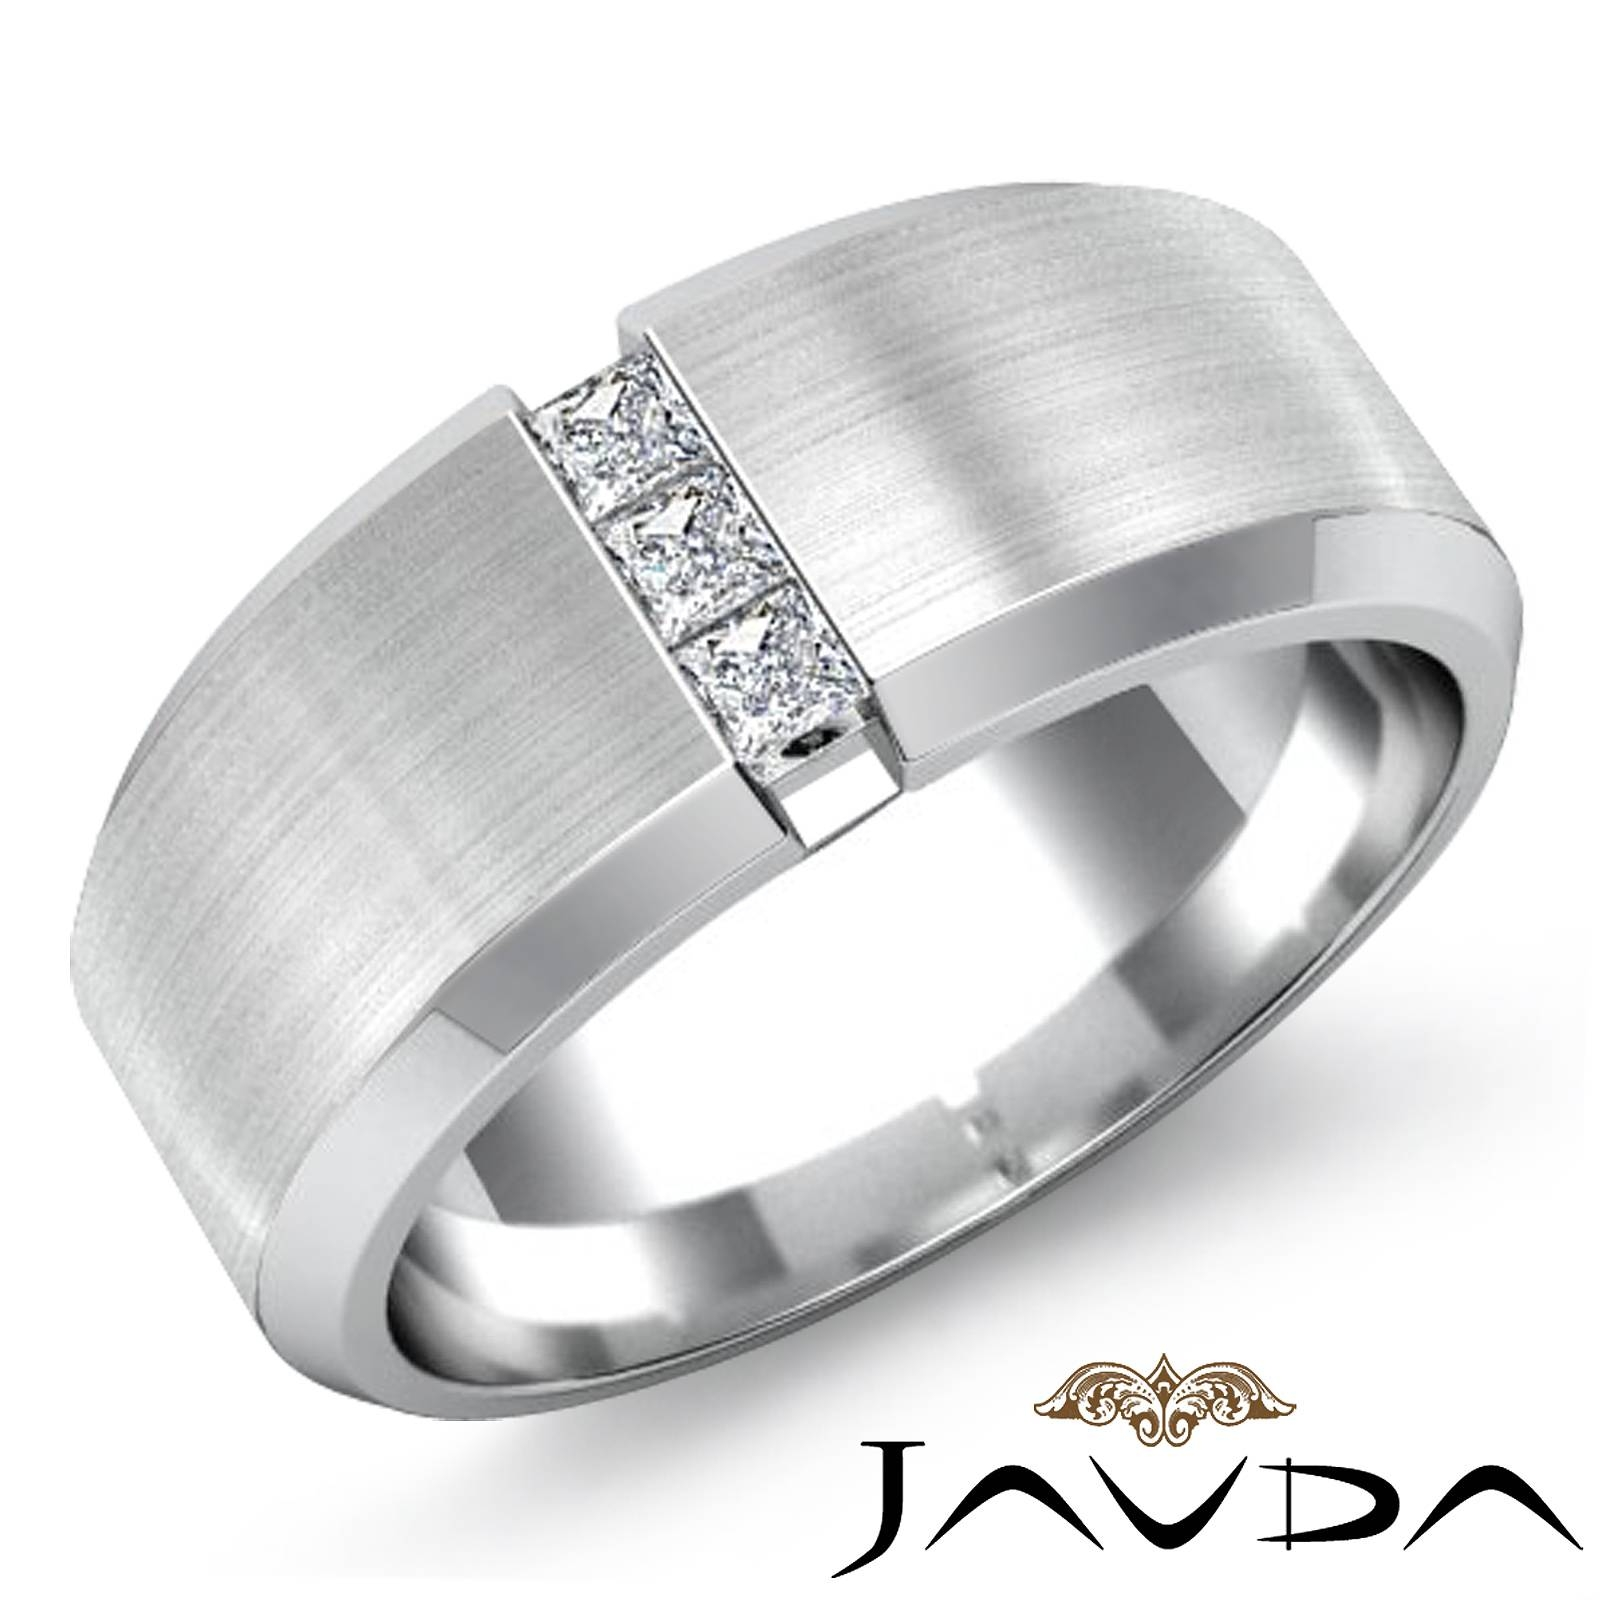 rings engagement styles pave your me ring with topic wedding bands those show band all